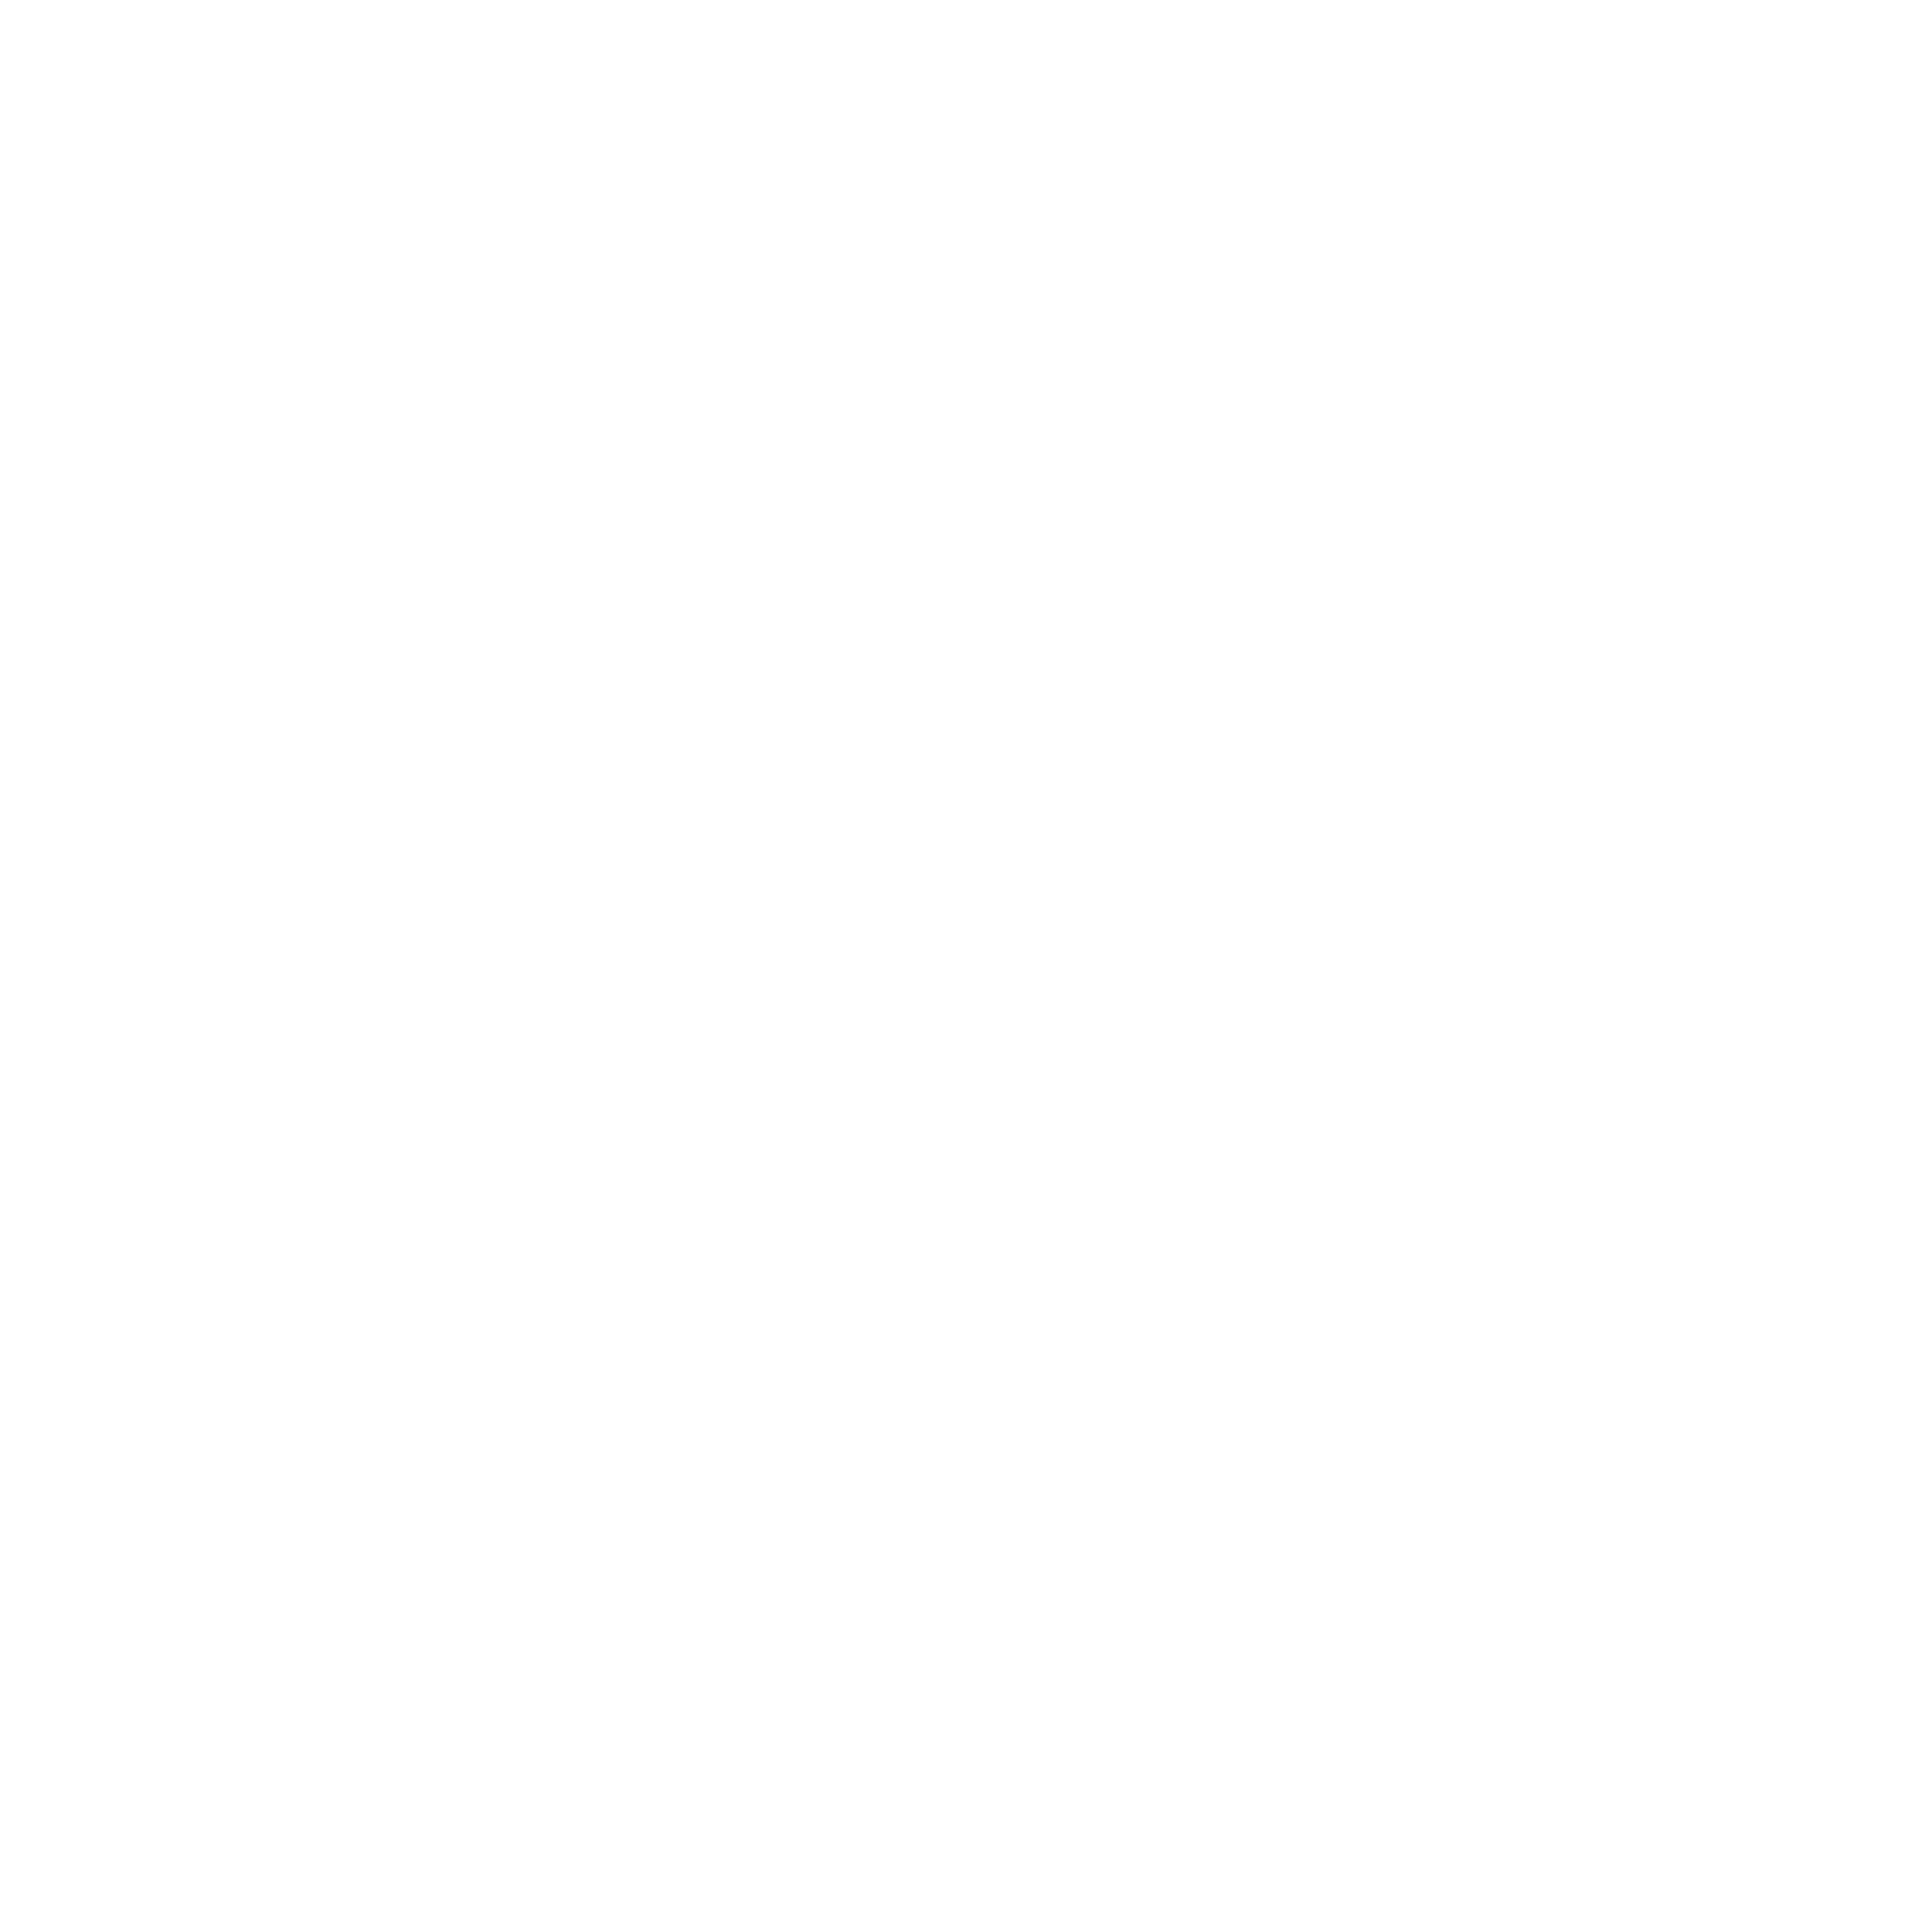 roaster Stumptown's logo